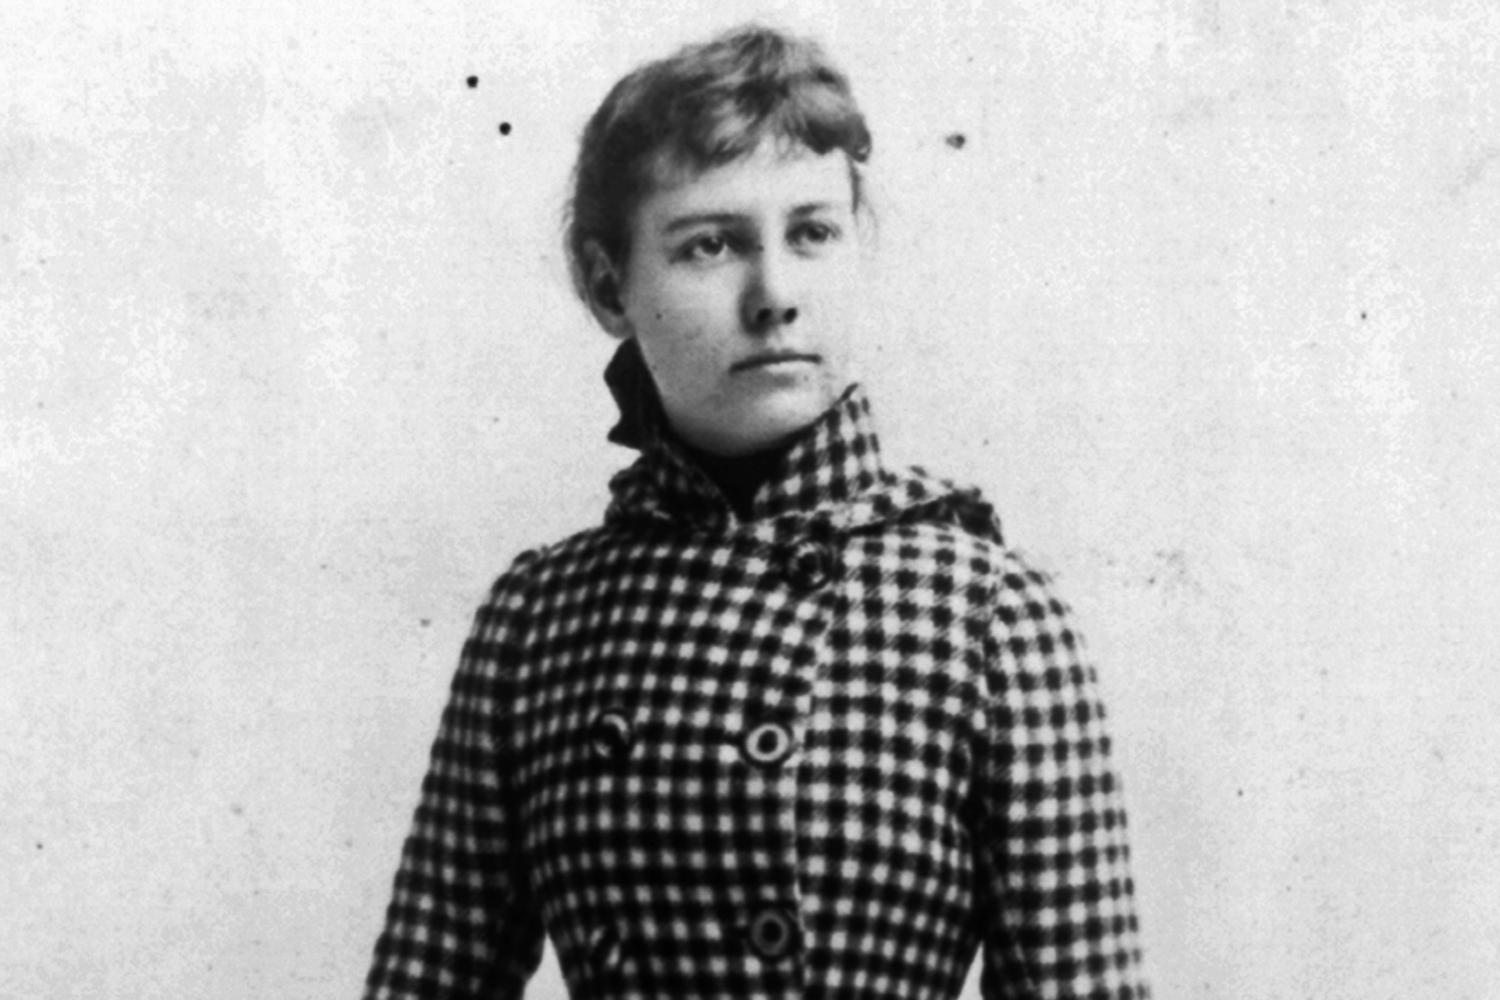 Future Of Journalism >> How Nellie Bly became a Victorian sensation and changed journalism forever - Vox